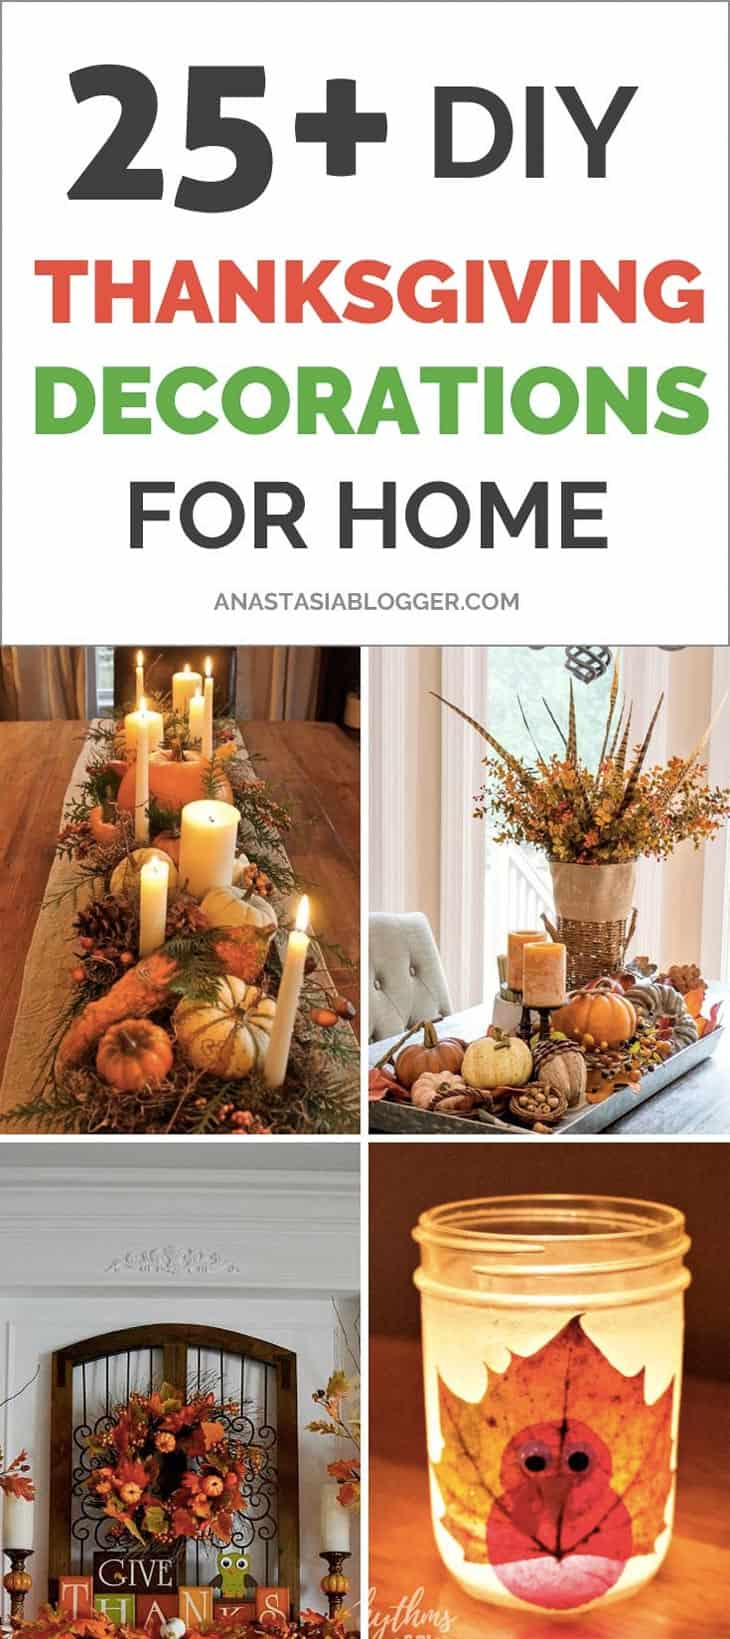 25+ DIY Thanksgiving Decorations for Home to try this year! Check these cheap and easy rustic Thanksgiving decorations table, for porch, for outdoor. Best Thanksgiving crafts ideas for kids to take part in DIY Thanksgiving party! #thanksgivingideas #thanksgivingdecor #thanksgivingday